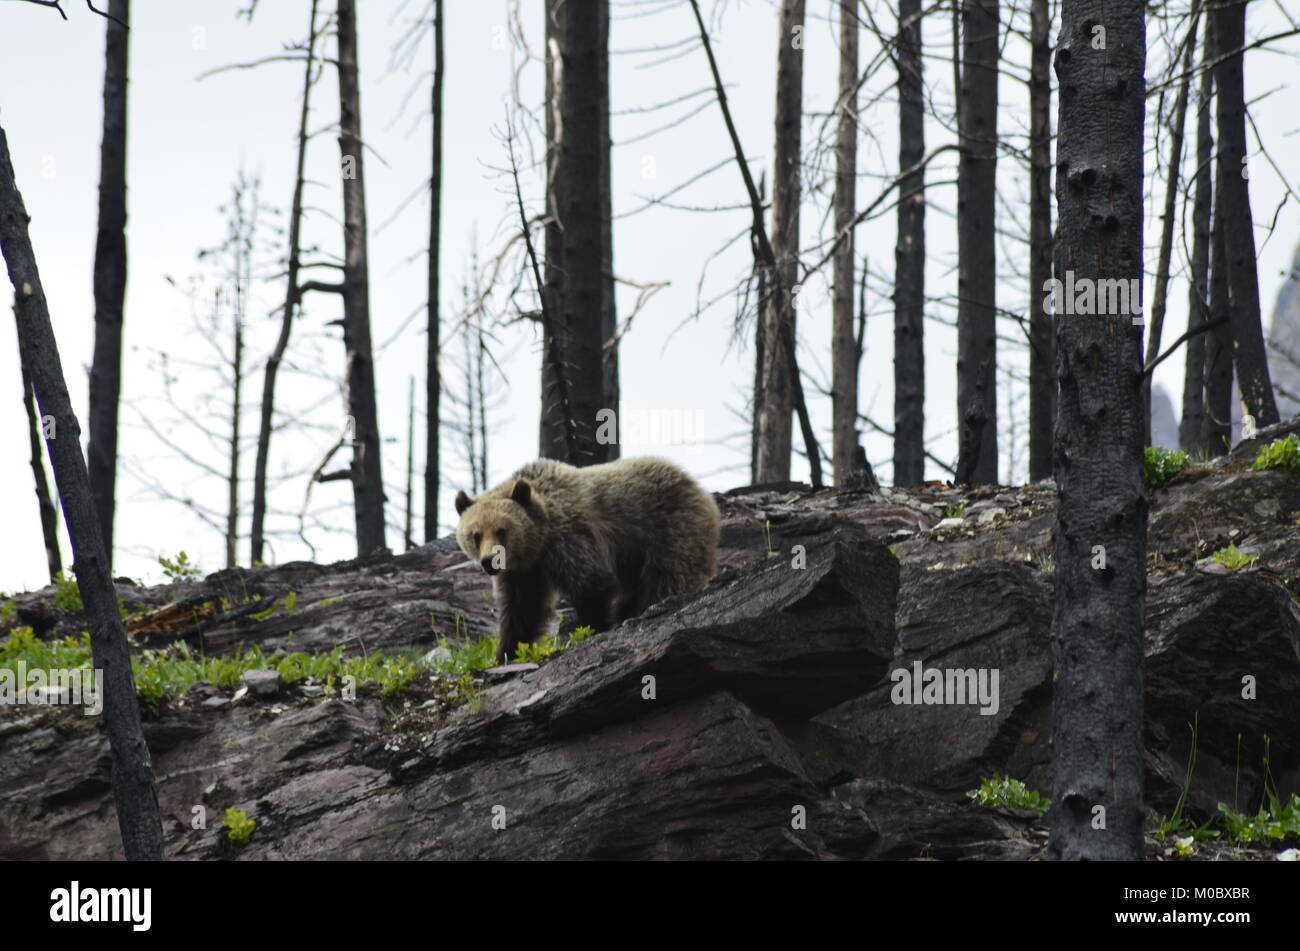 A large grizzly bear searches for food while roaming through, where a forest fire had occurred four weeks before. - Stock Image